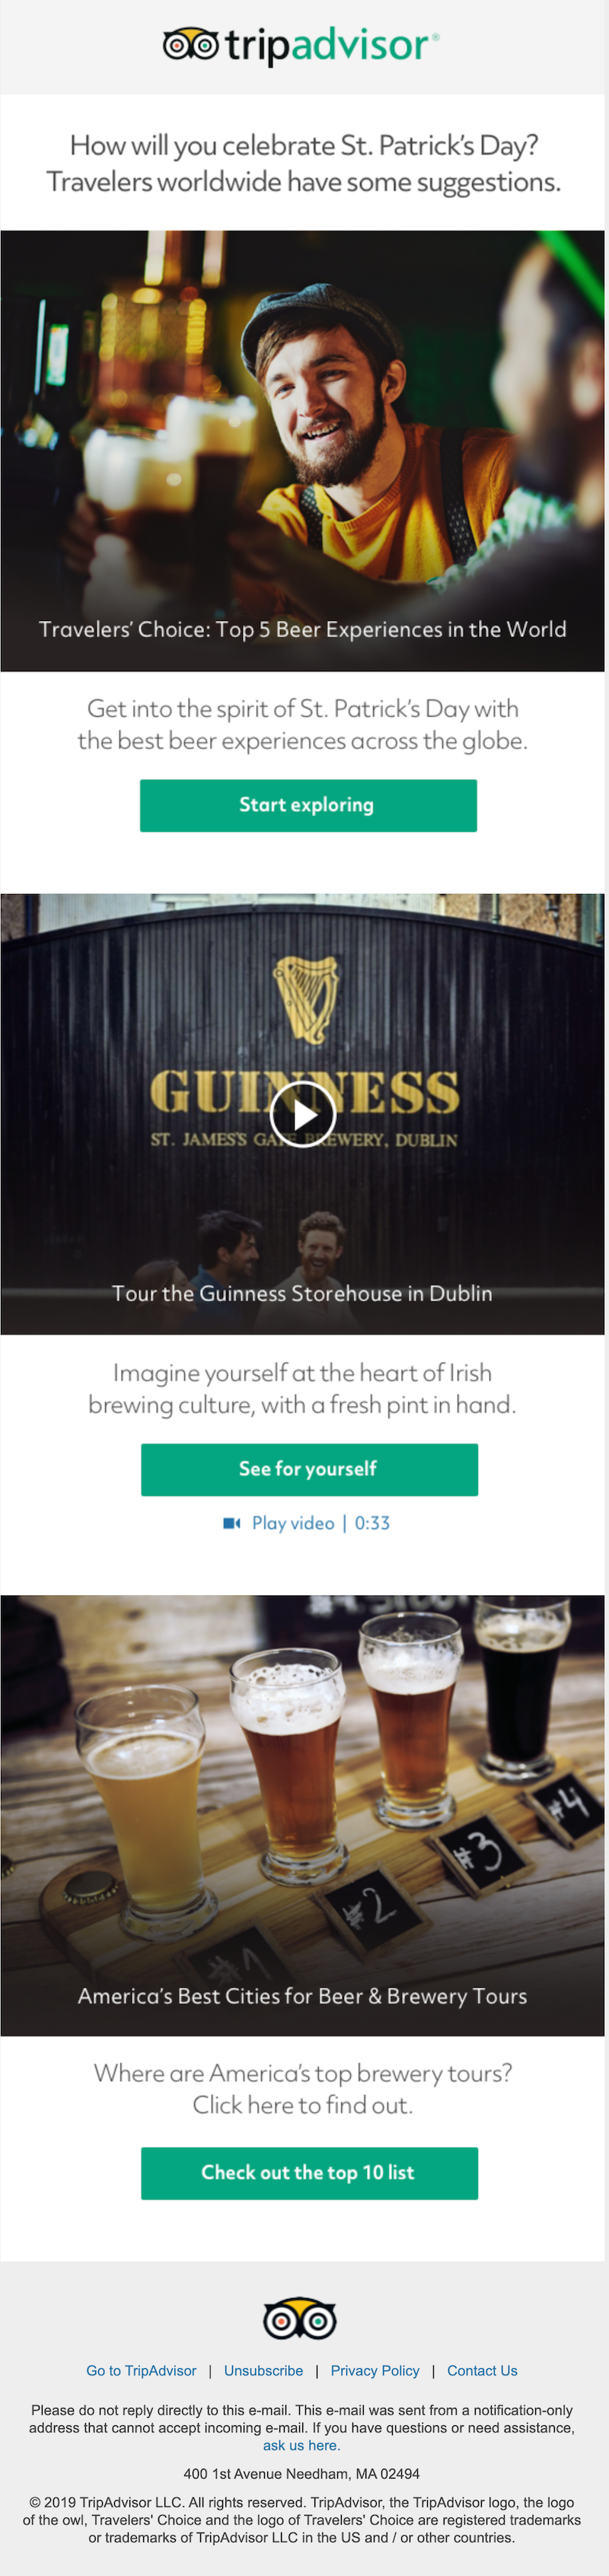 st patrick's email ideas